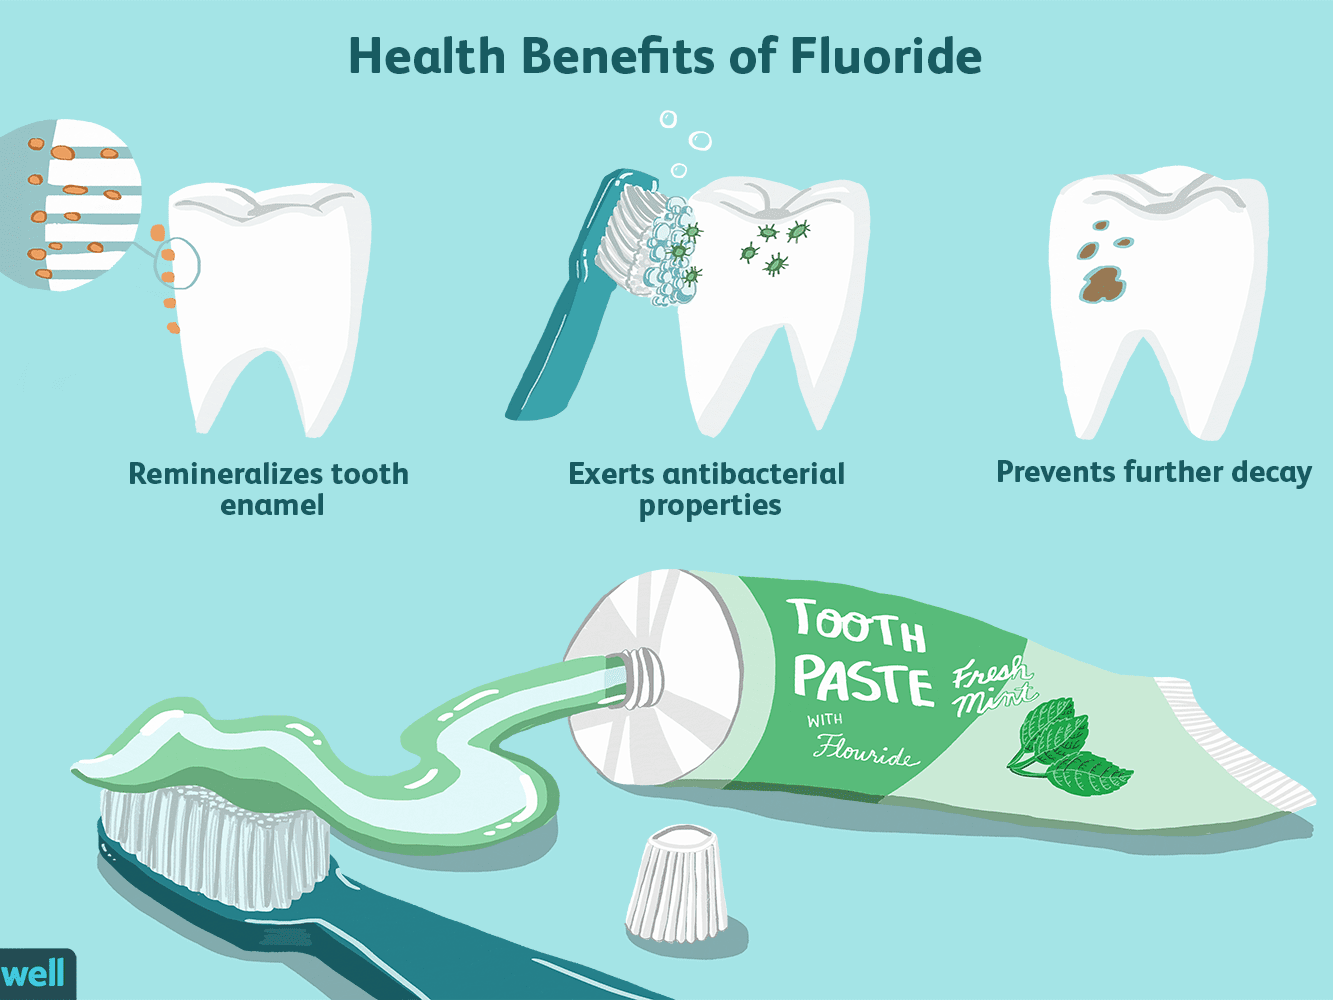 Fluoride Toothpaste for strong teeth